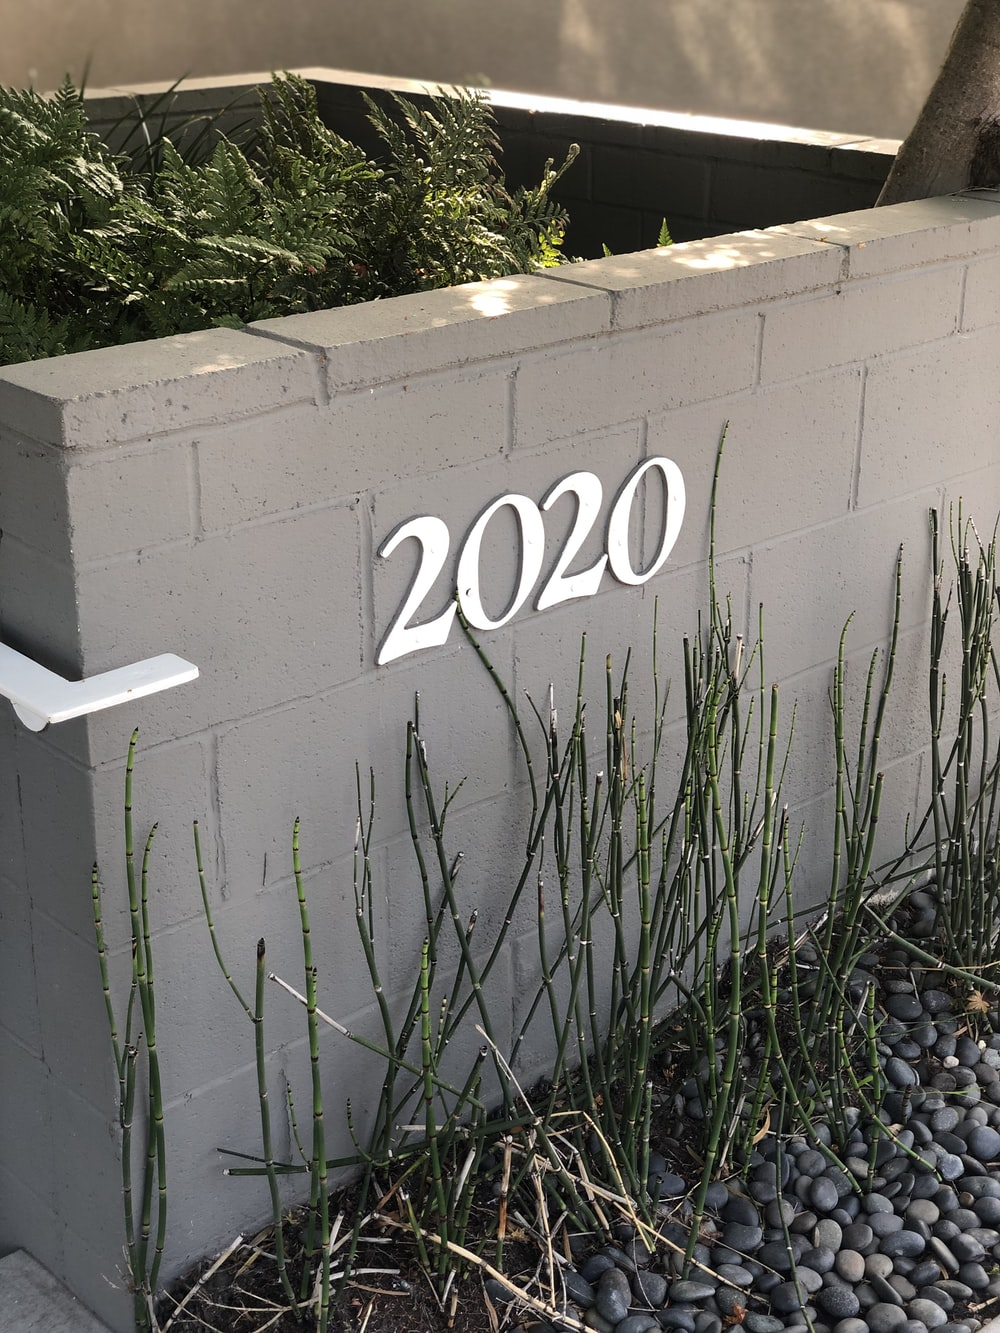 2020 number sign on gray concrete wall